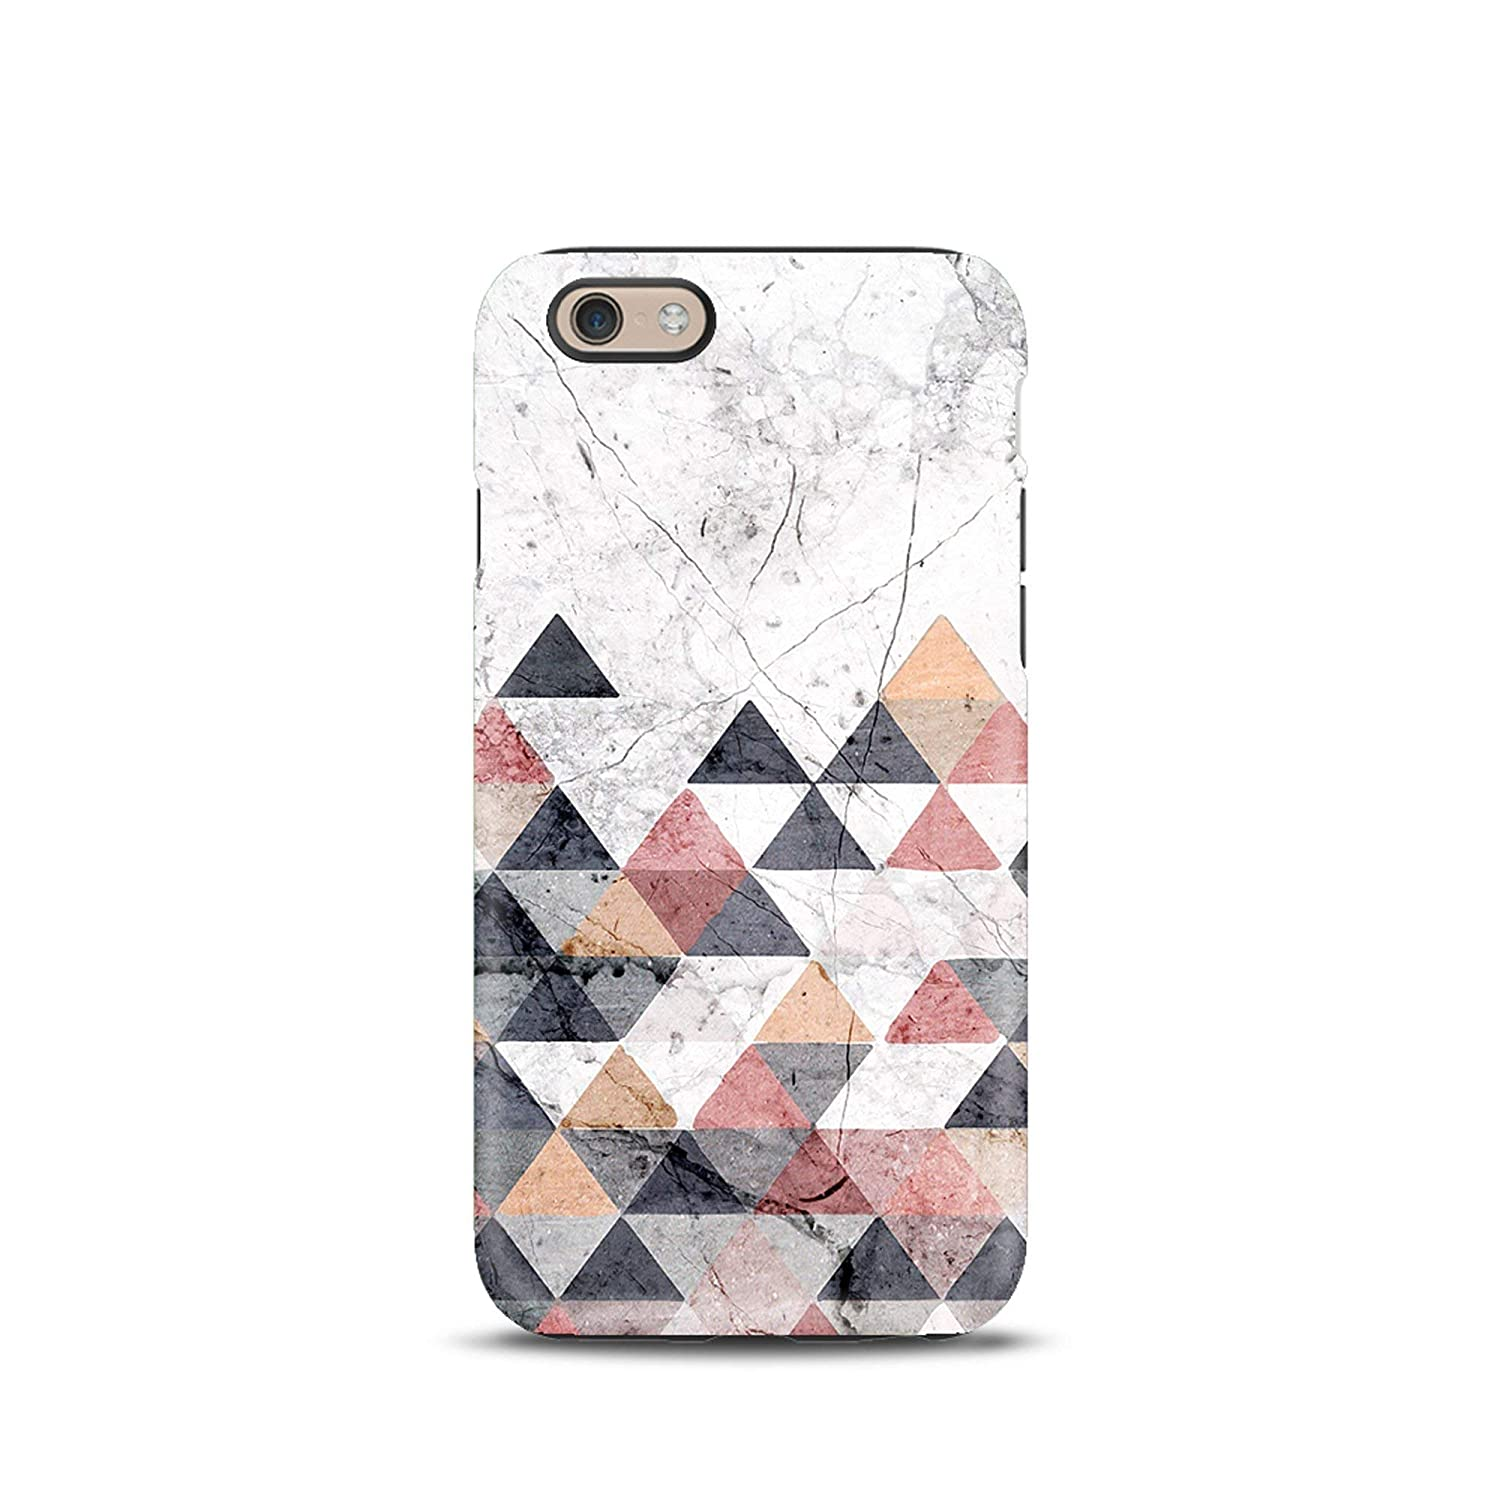 Marble Geometric Triangle Triangles cover case TPU Tough for iPhone 5, 5s, 6, 6s, 7, 7 plus, 8, 8 plus, X, XS, for Galaxy S6, S7, S8